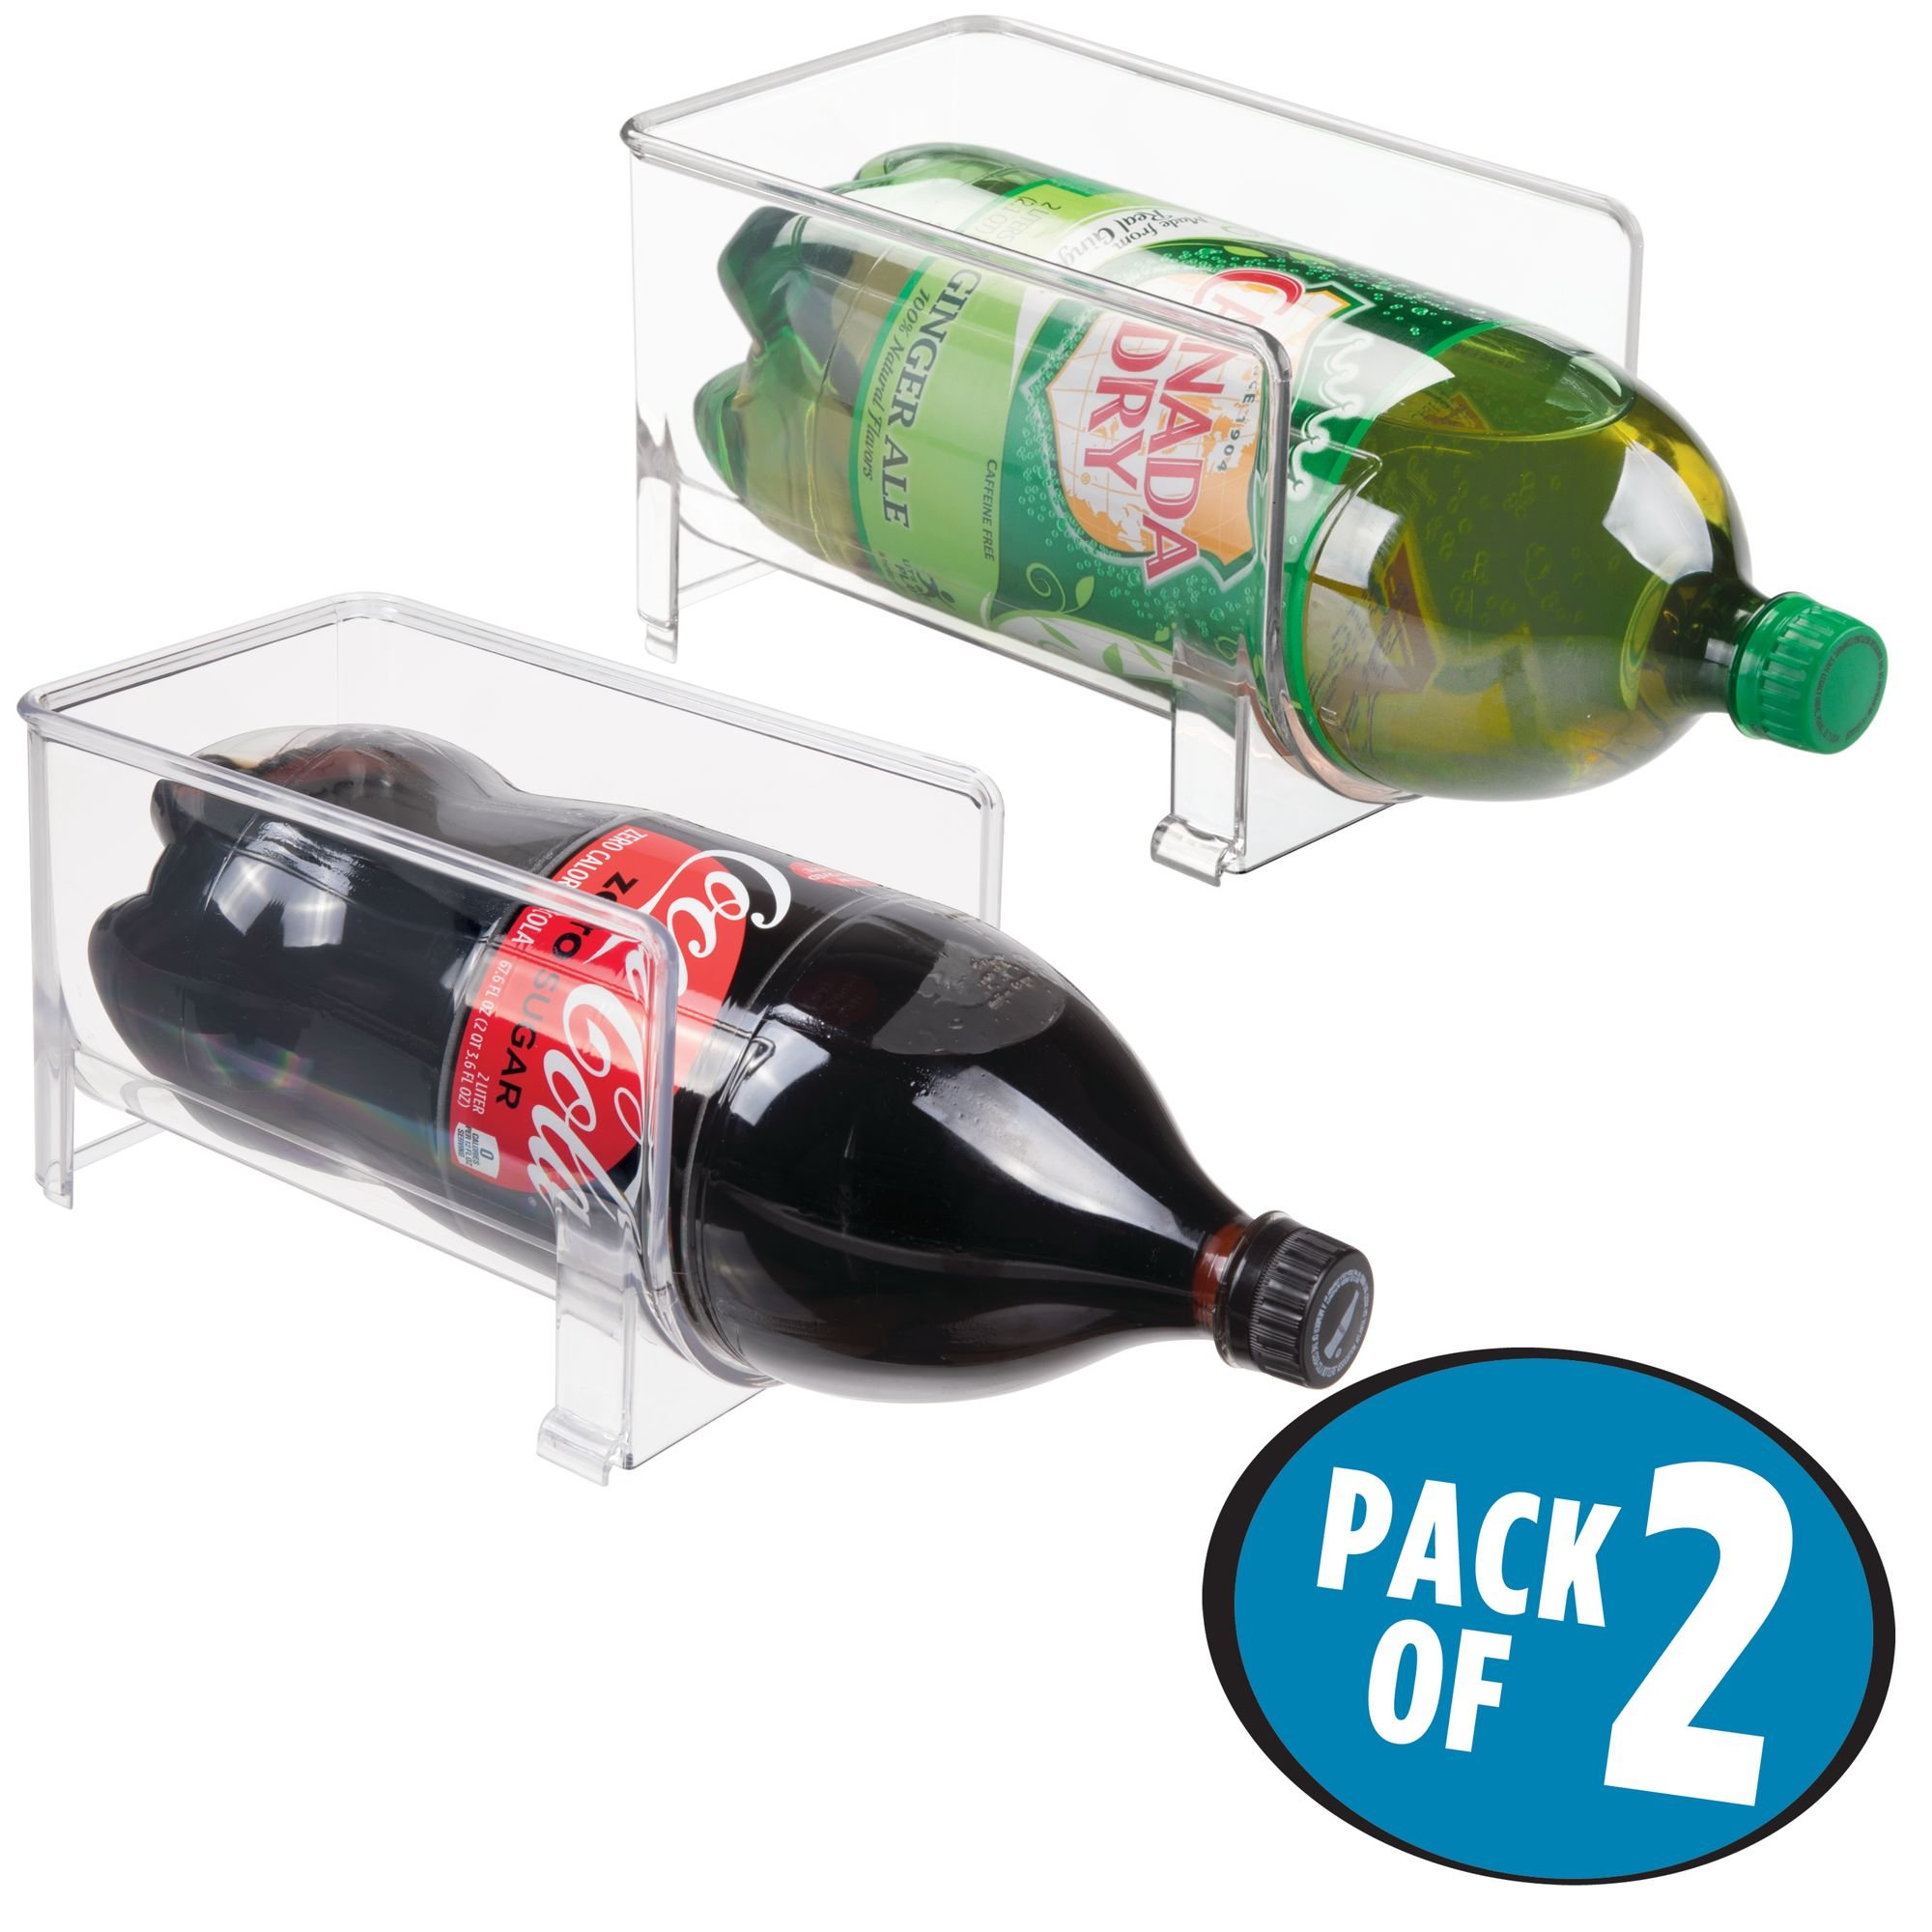 mDesign Large Stackable Kitchen Bin Storage Organizer Rack for Pop/Soda Bottles for Refrigerator, Pantry, Countertops and Cabinets - Holds 2-Liter Bottles - BPA Free, Pack of 2, Clear